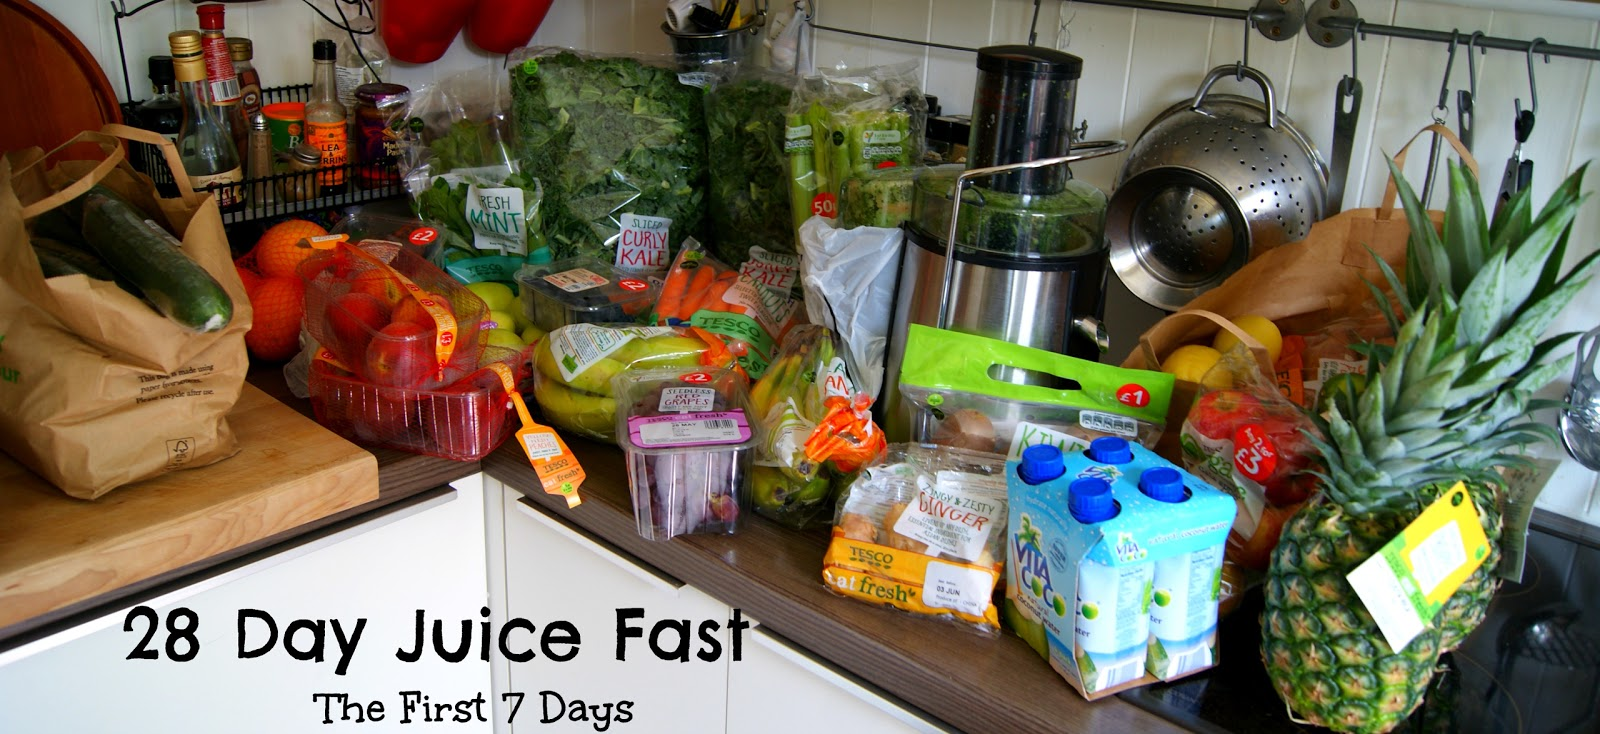 28 Day Juice Fast - The First 7 Days